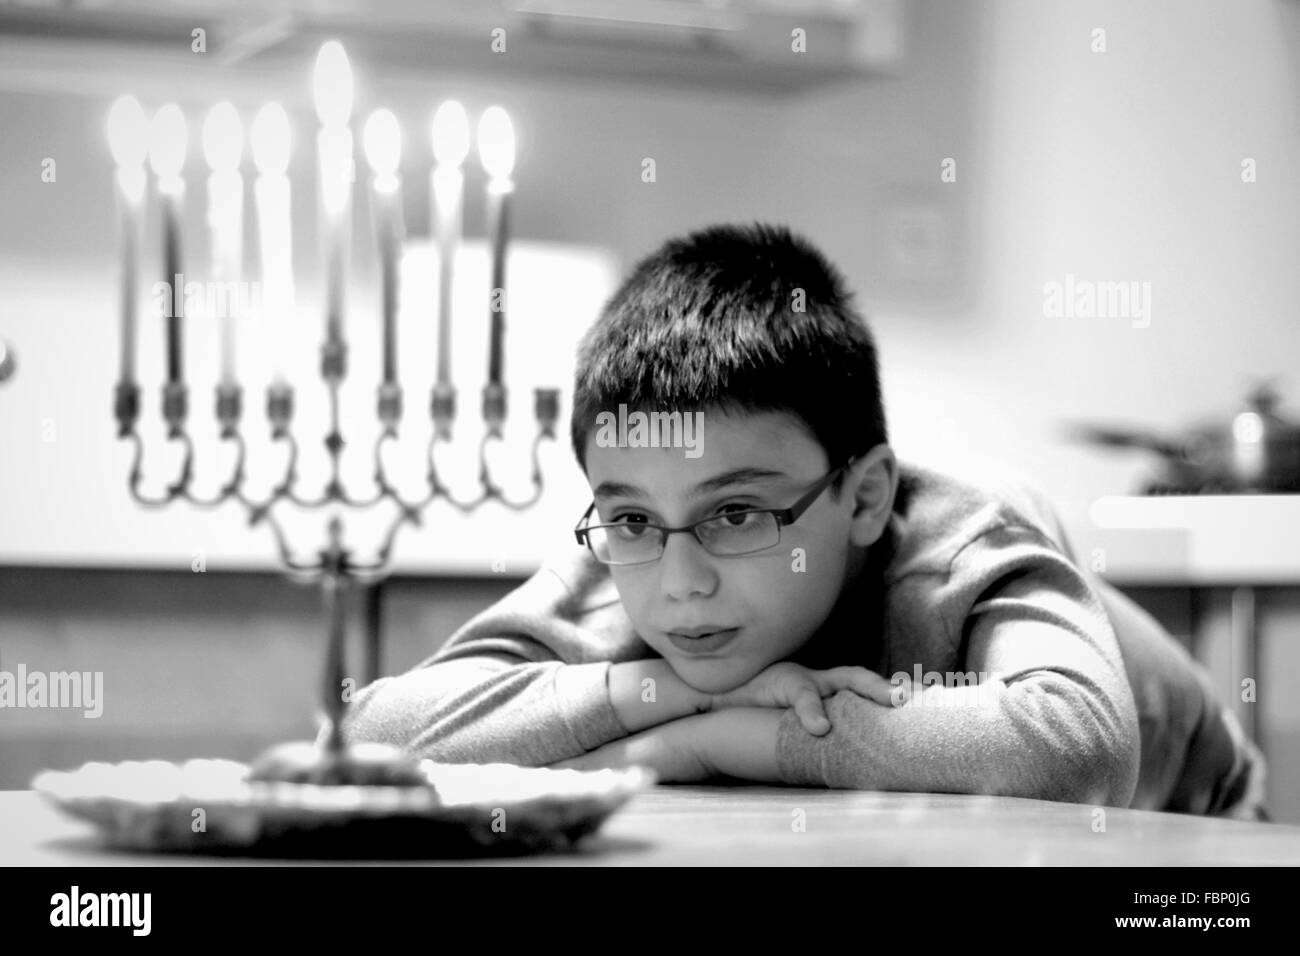 Cute Boy Looking At Lit Candles While Sitting On Table At Home Stock Photo